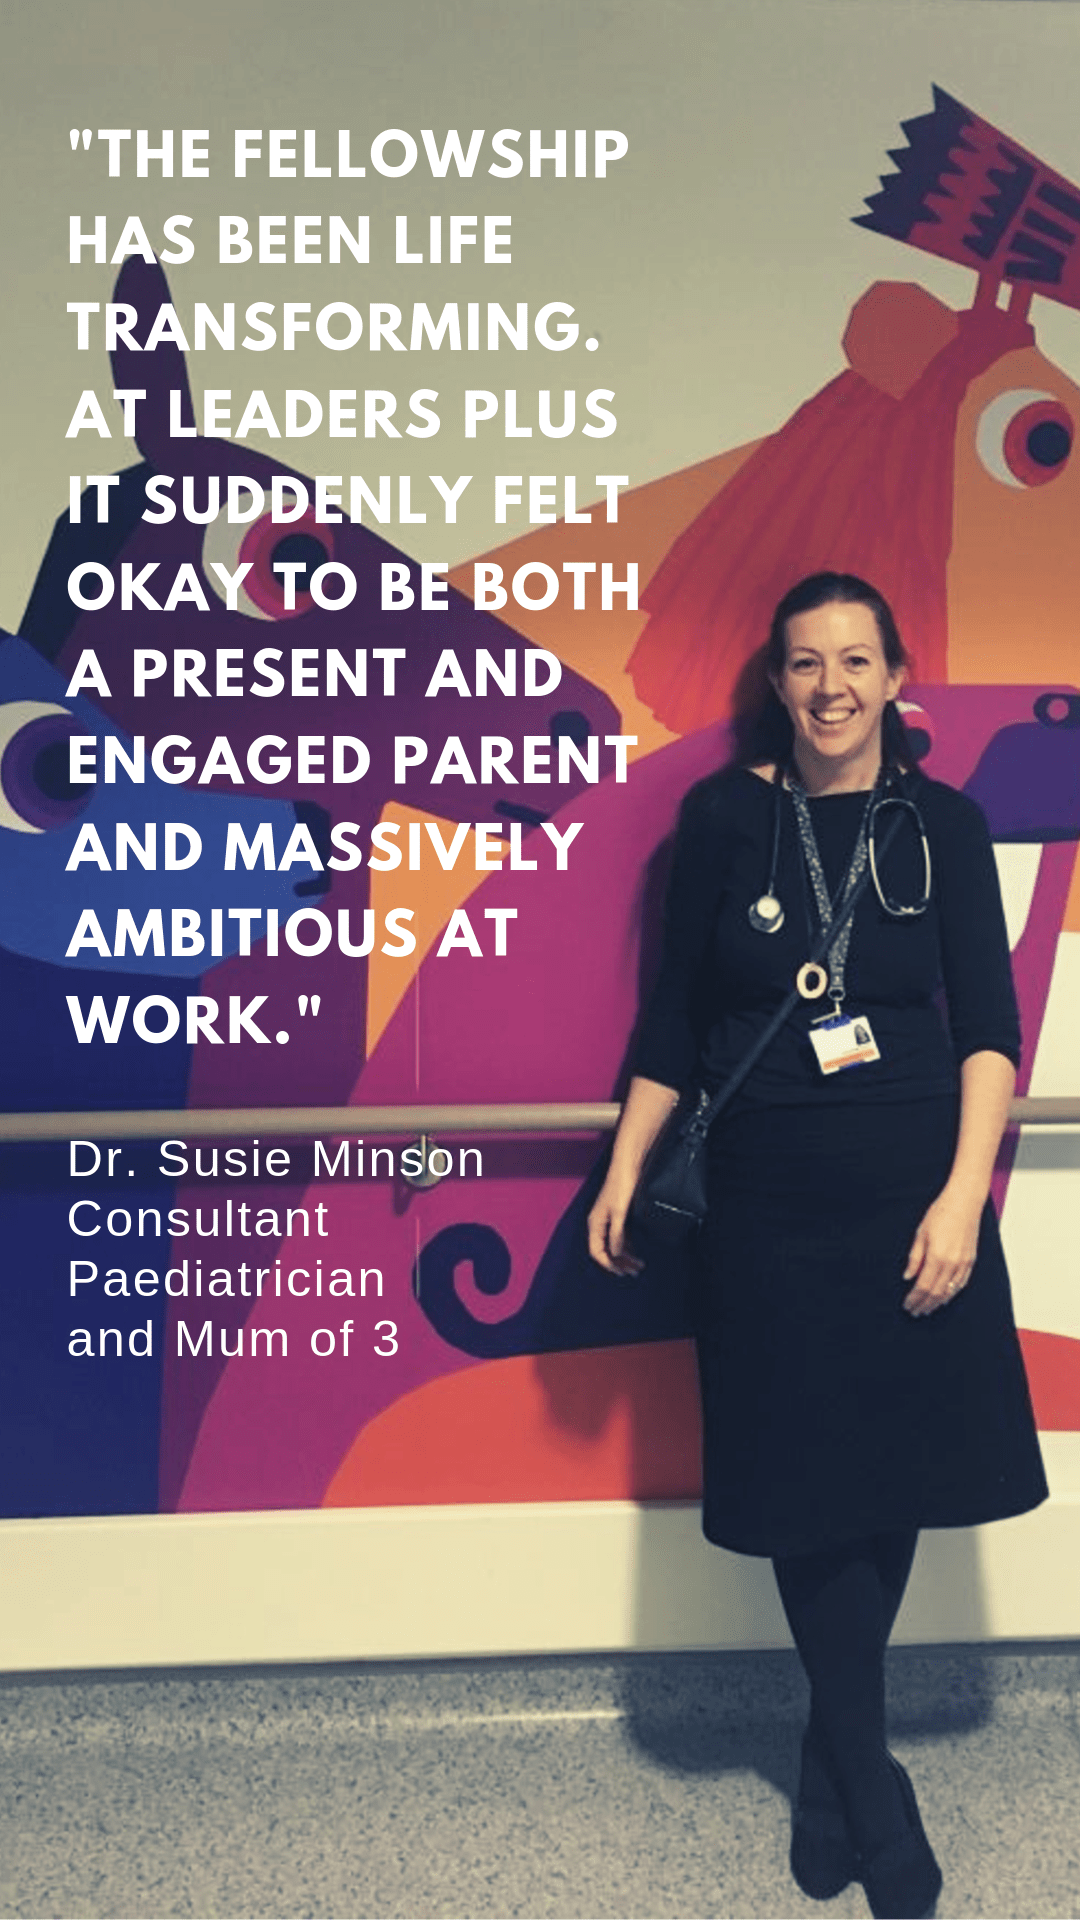 Dr Susie Minson Consultant Paediatrician and Leaders Plus Fellow